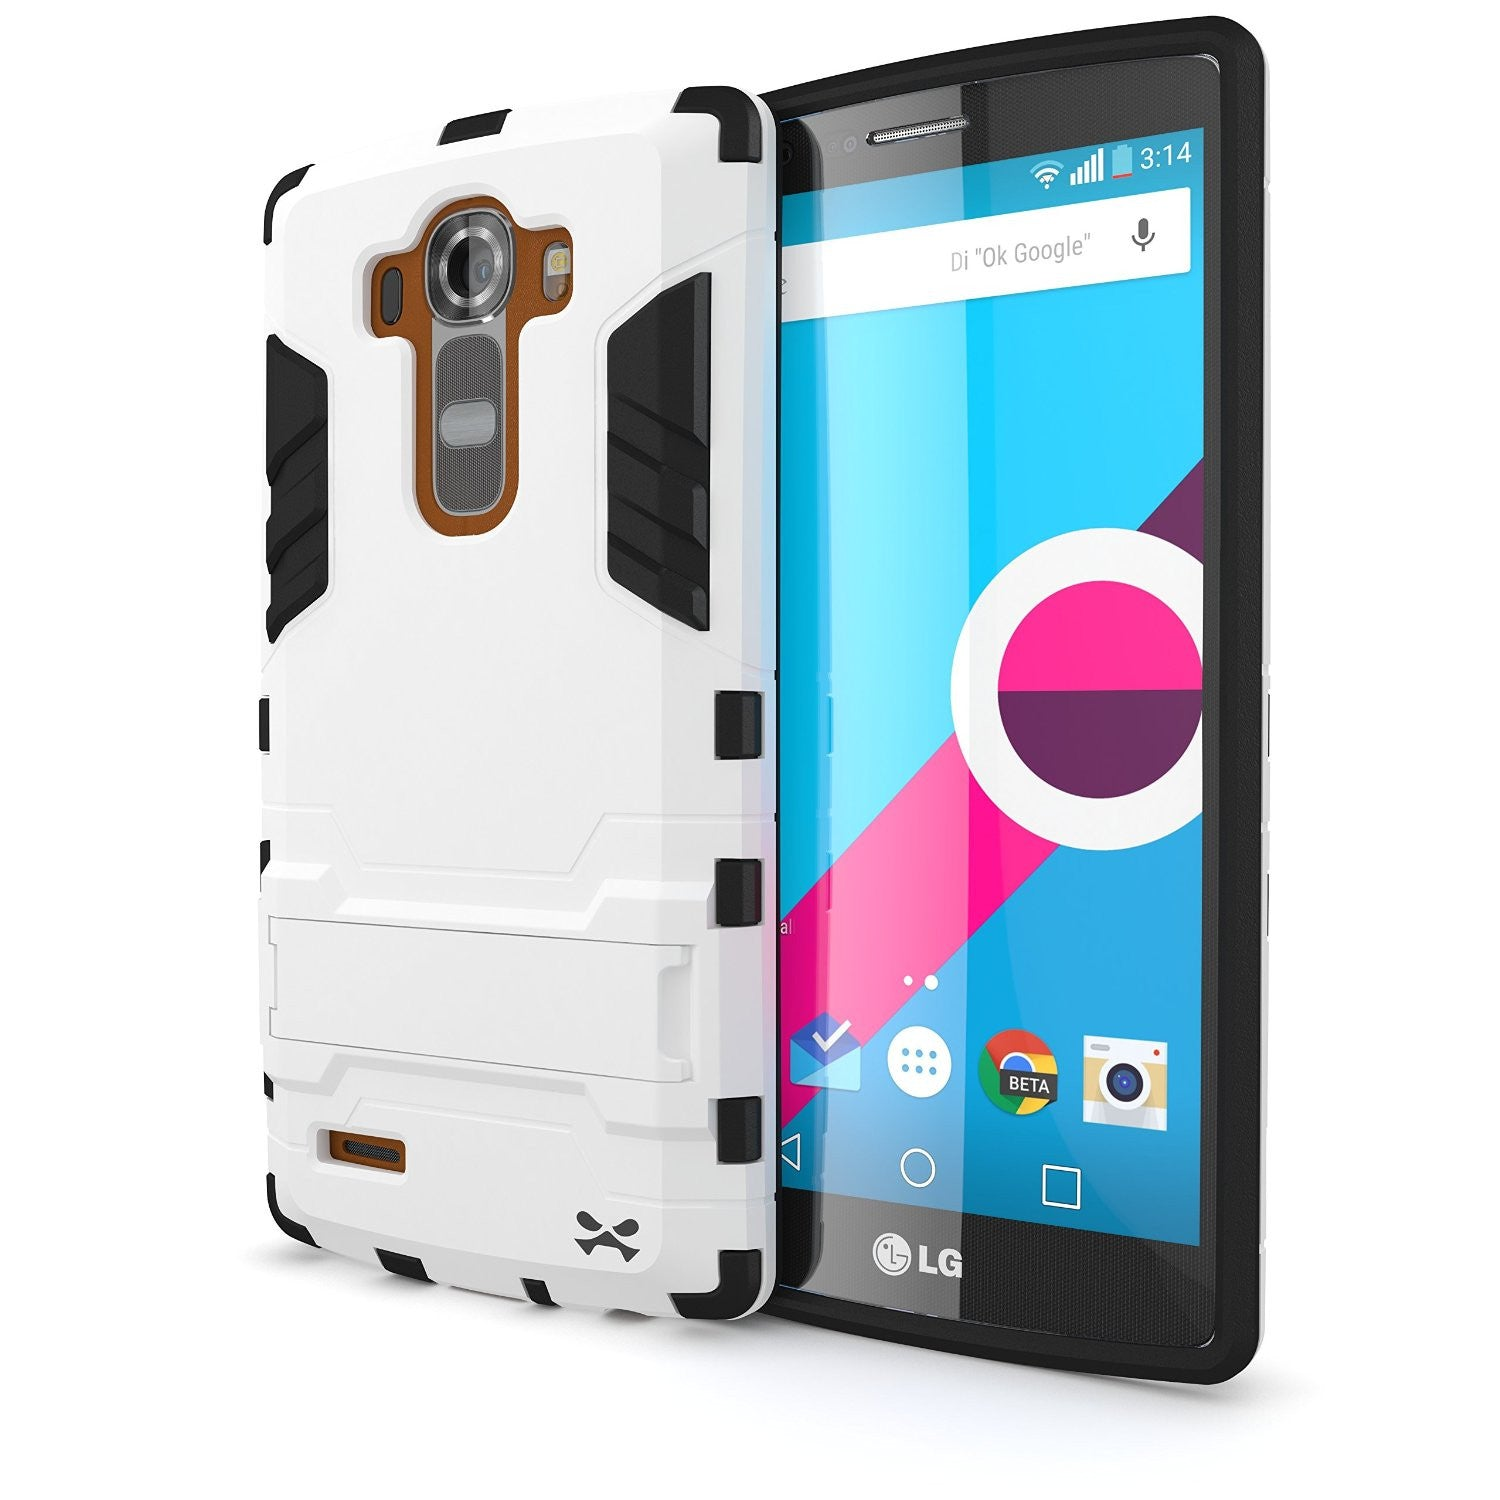 LG G4 Case Ghostek Armadillo 2.0 White w/ Tempered Glass Screen Protector | Slim Armor | Kickstand